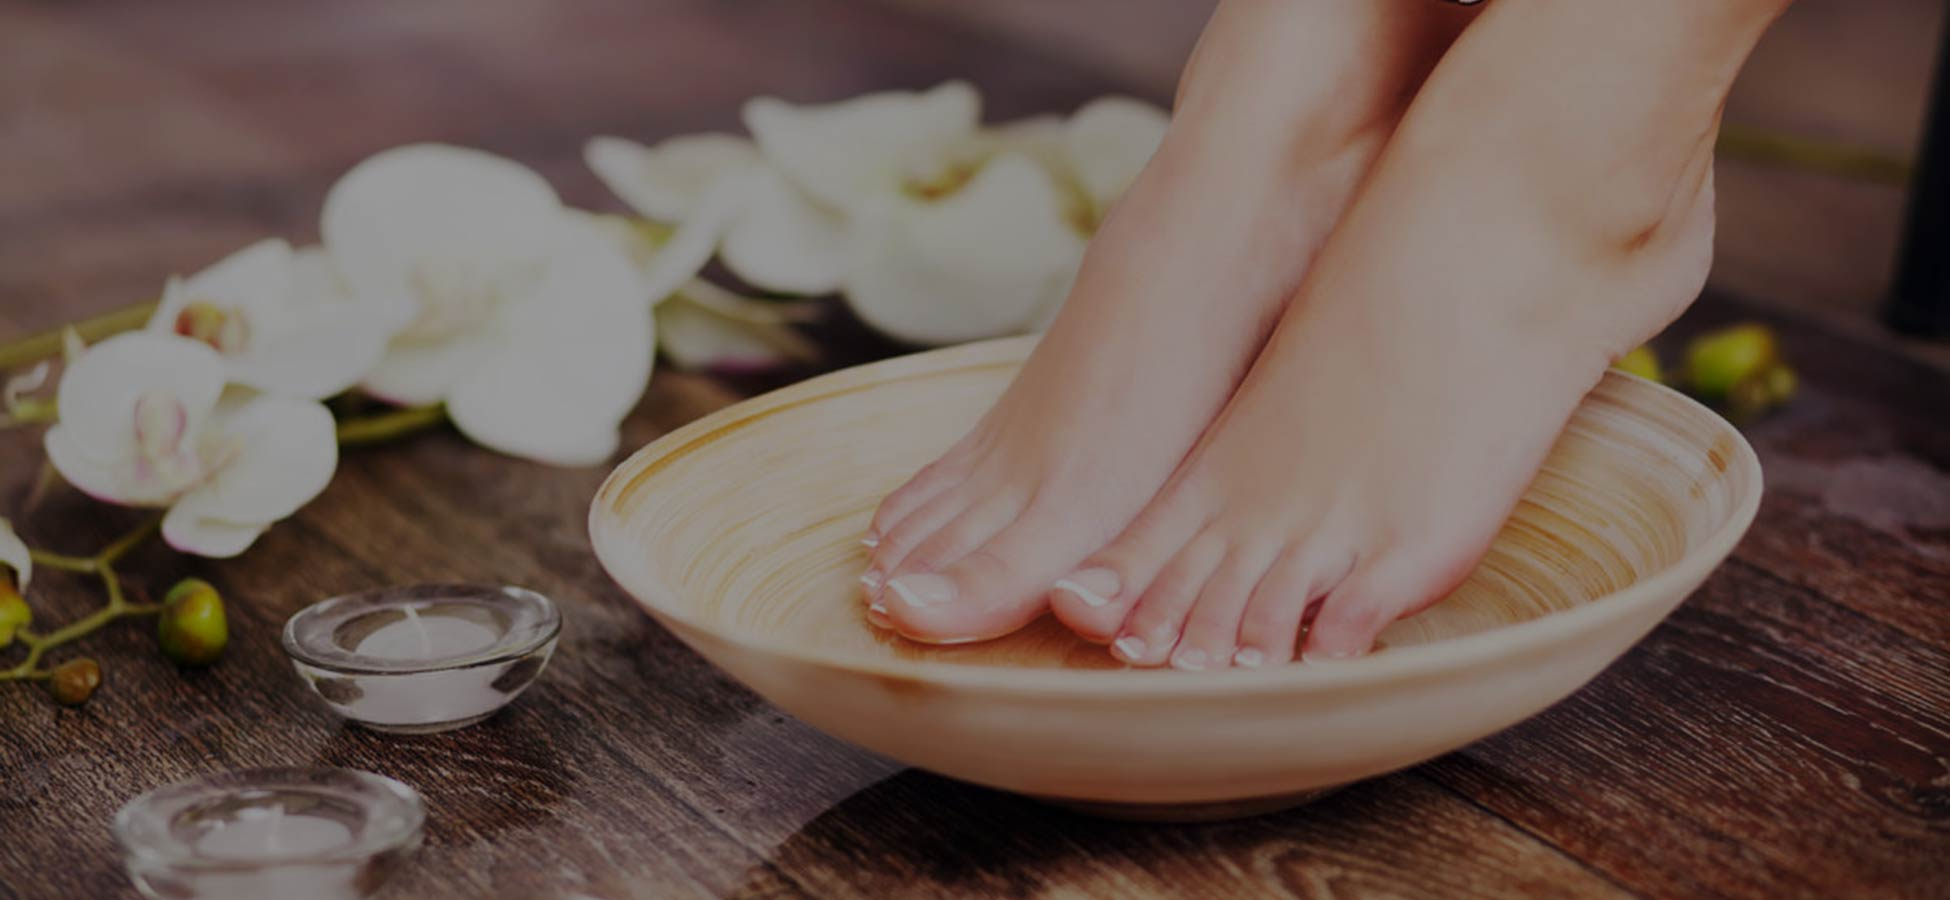 Scottsdale Pedicure Spa